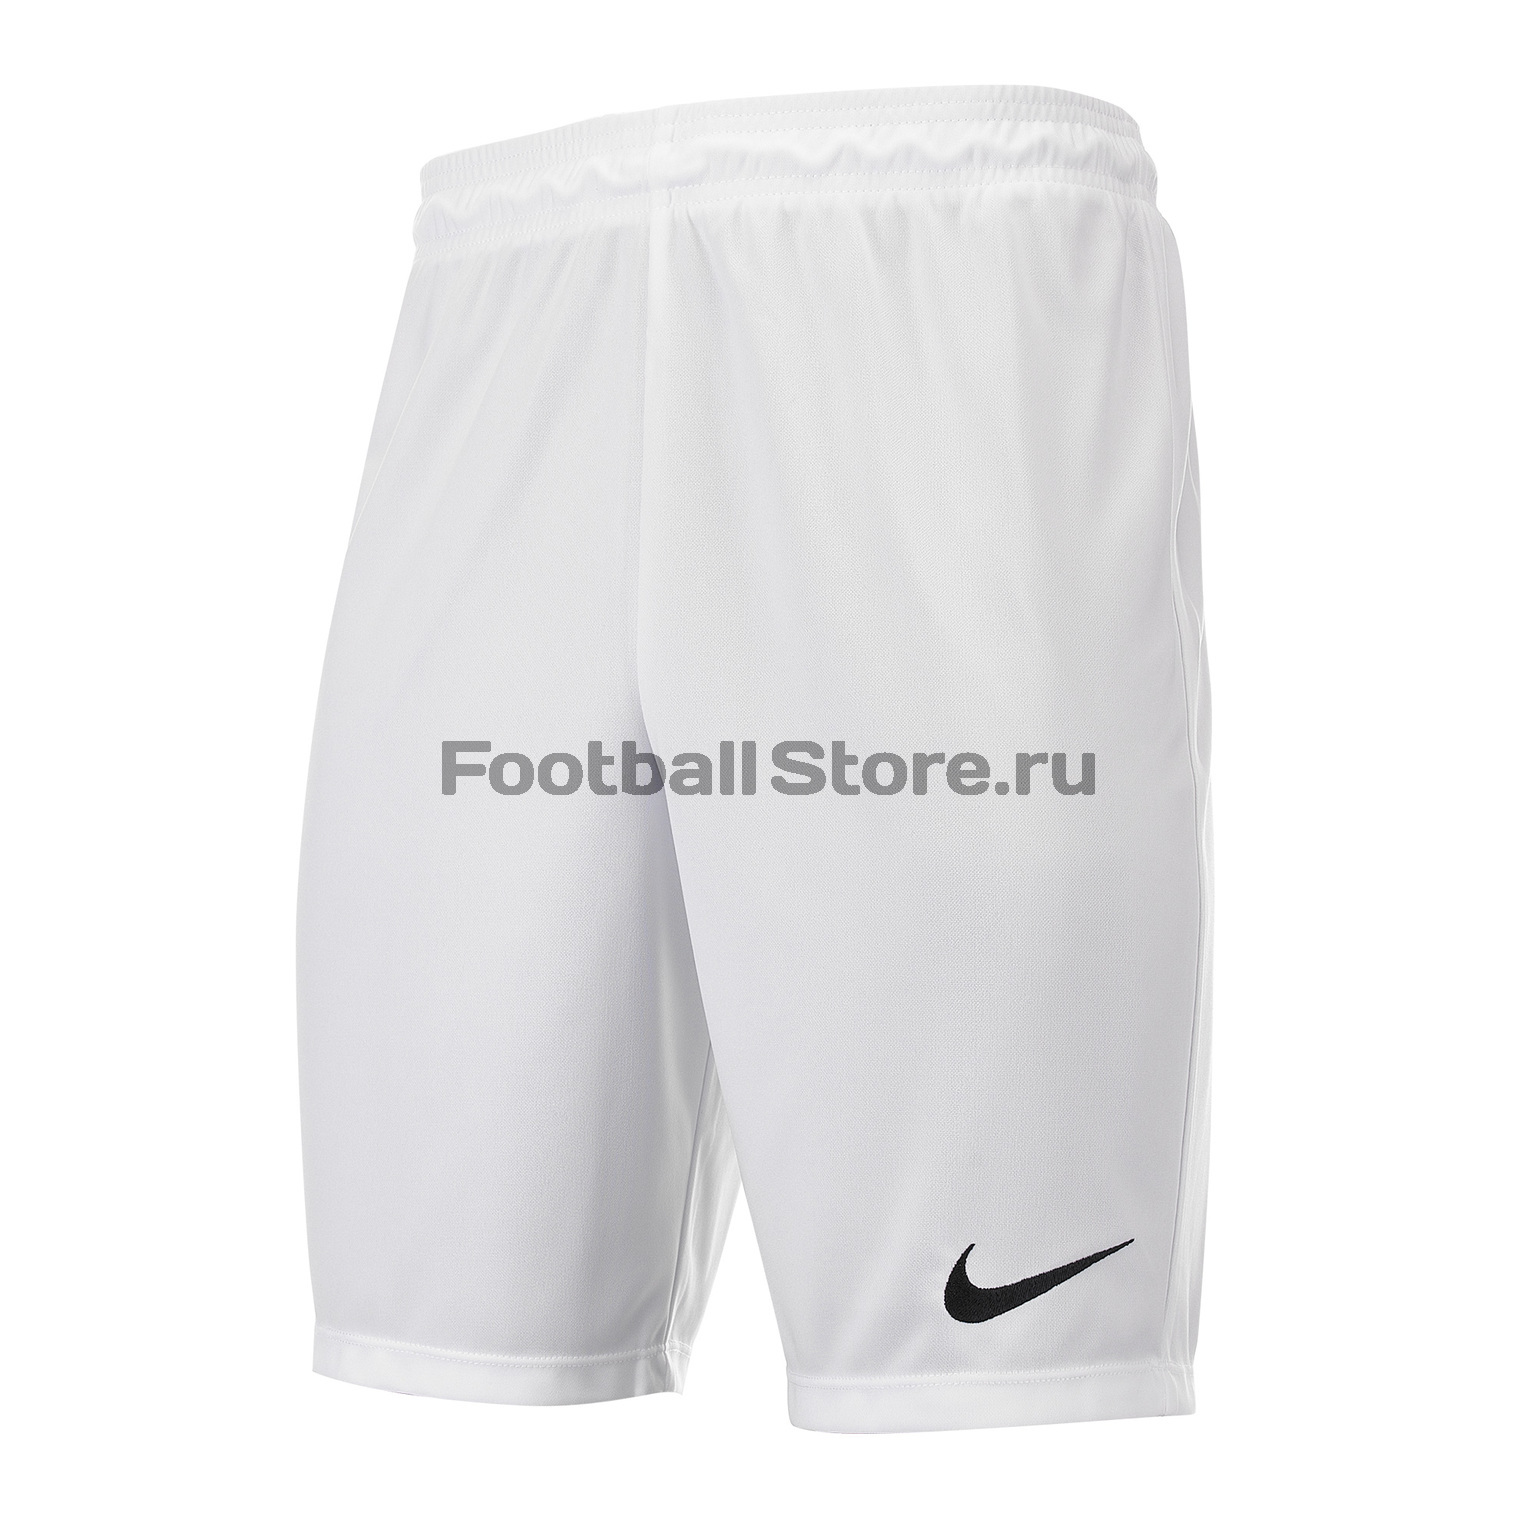 Шорты Nike Park II KNIT Short NB 725887-100